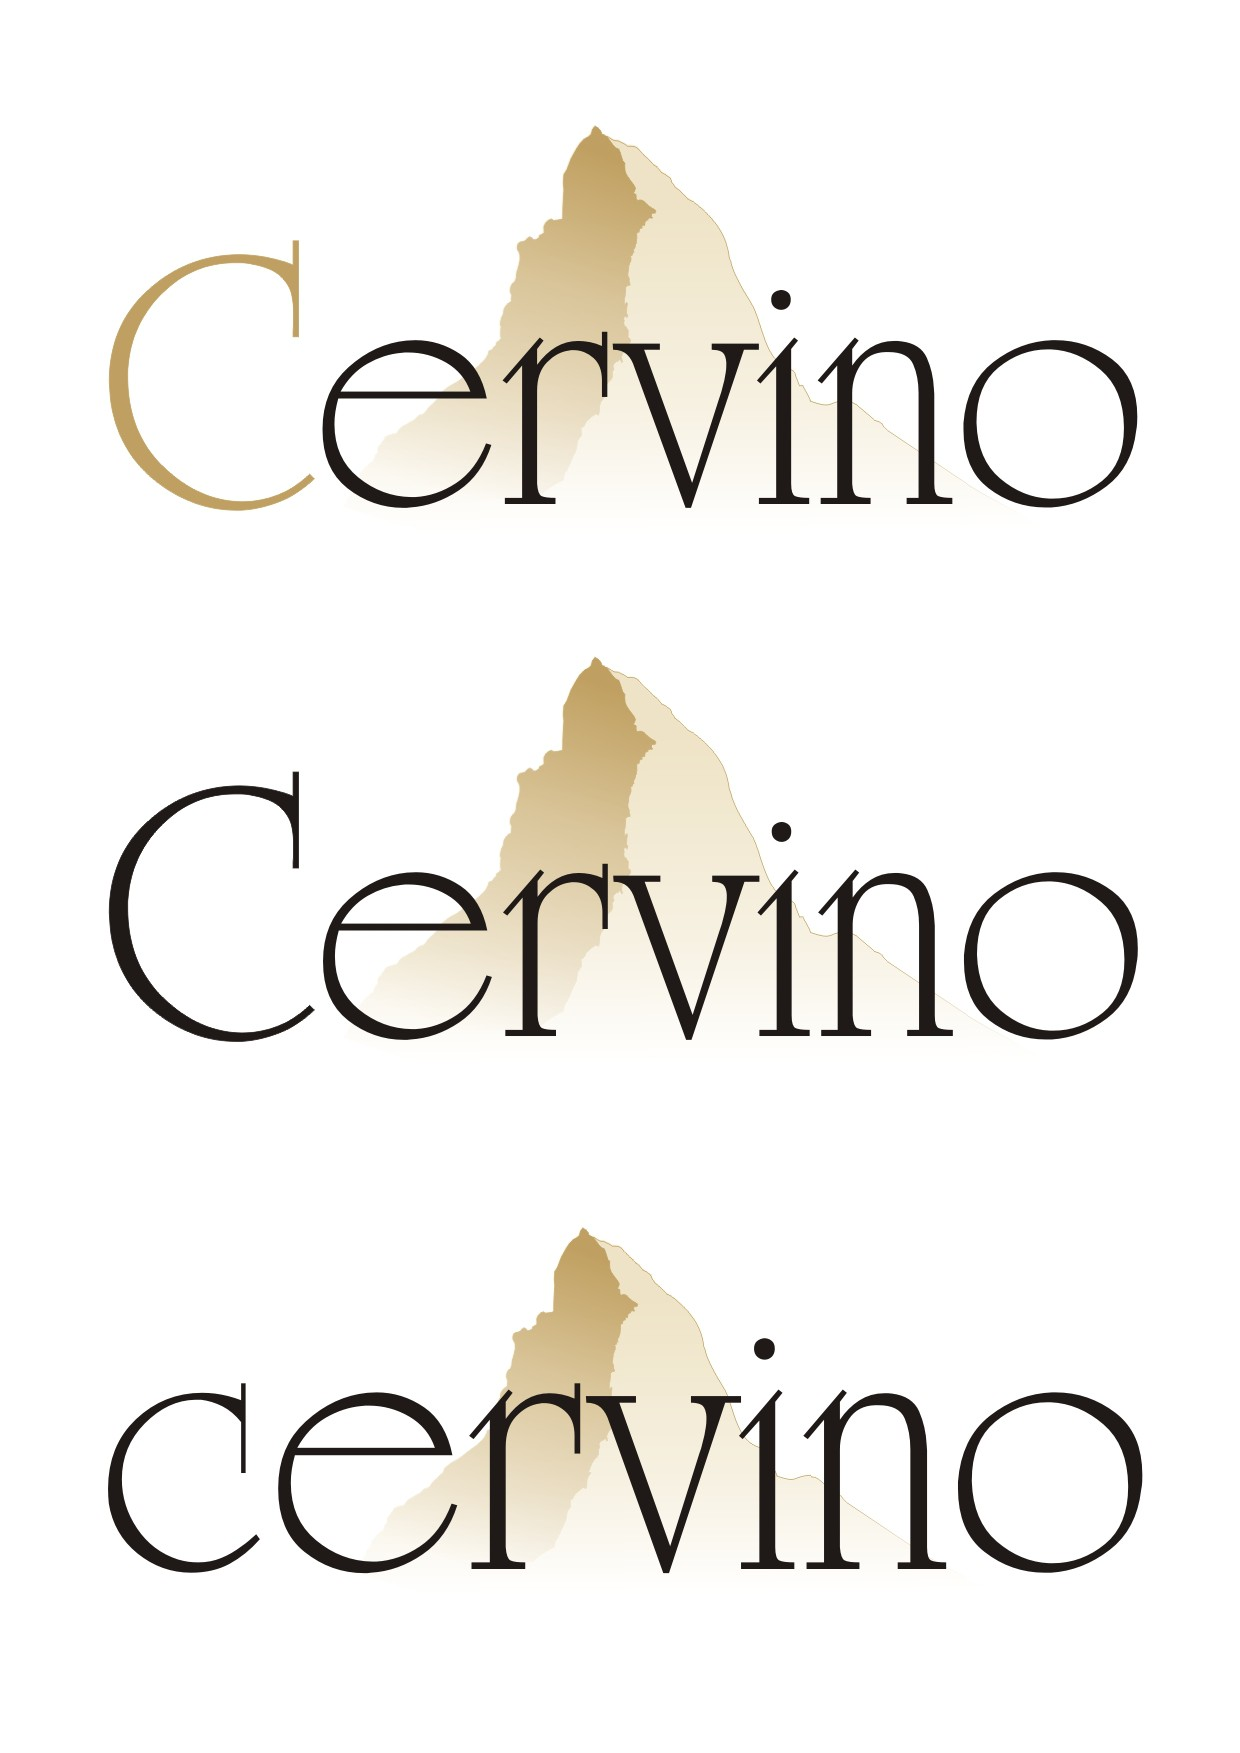 Create the Logo and packaging design for Cervino